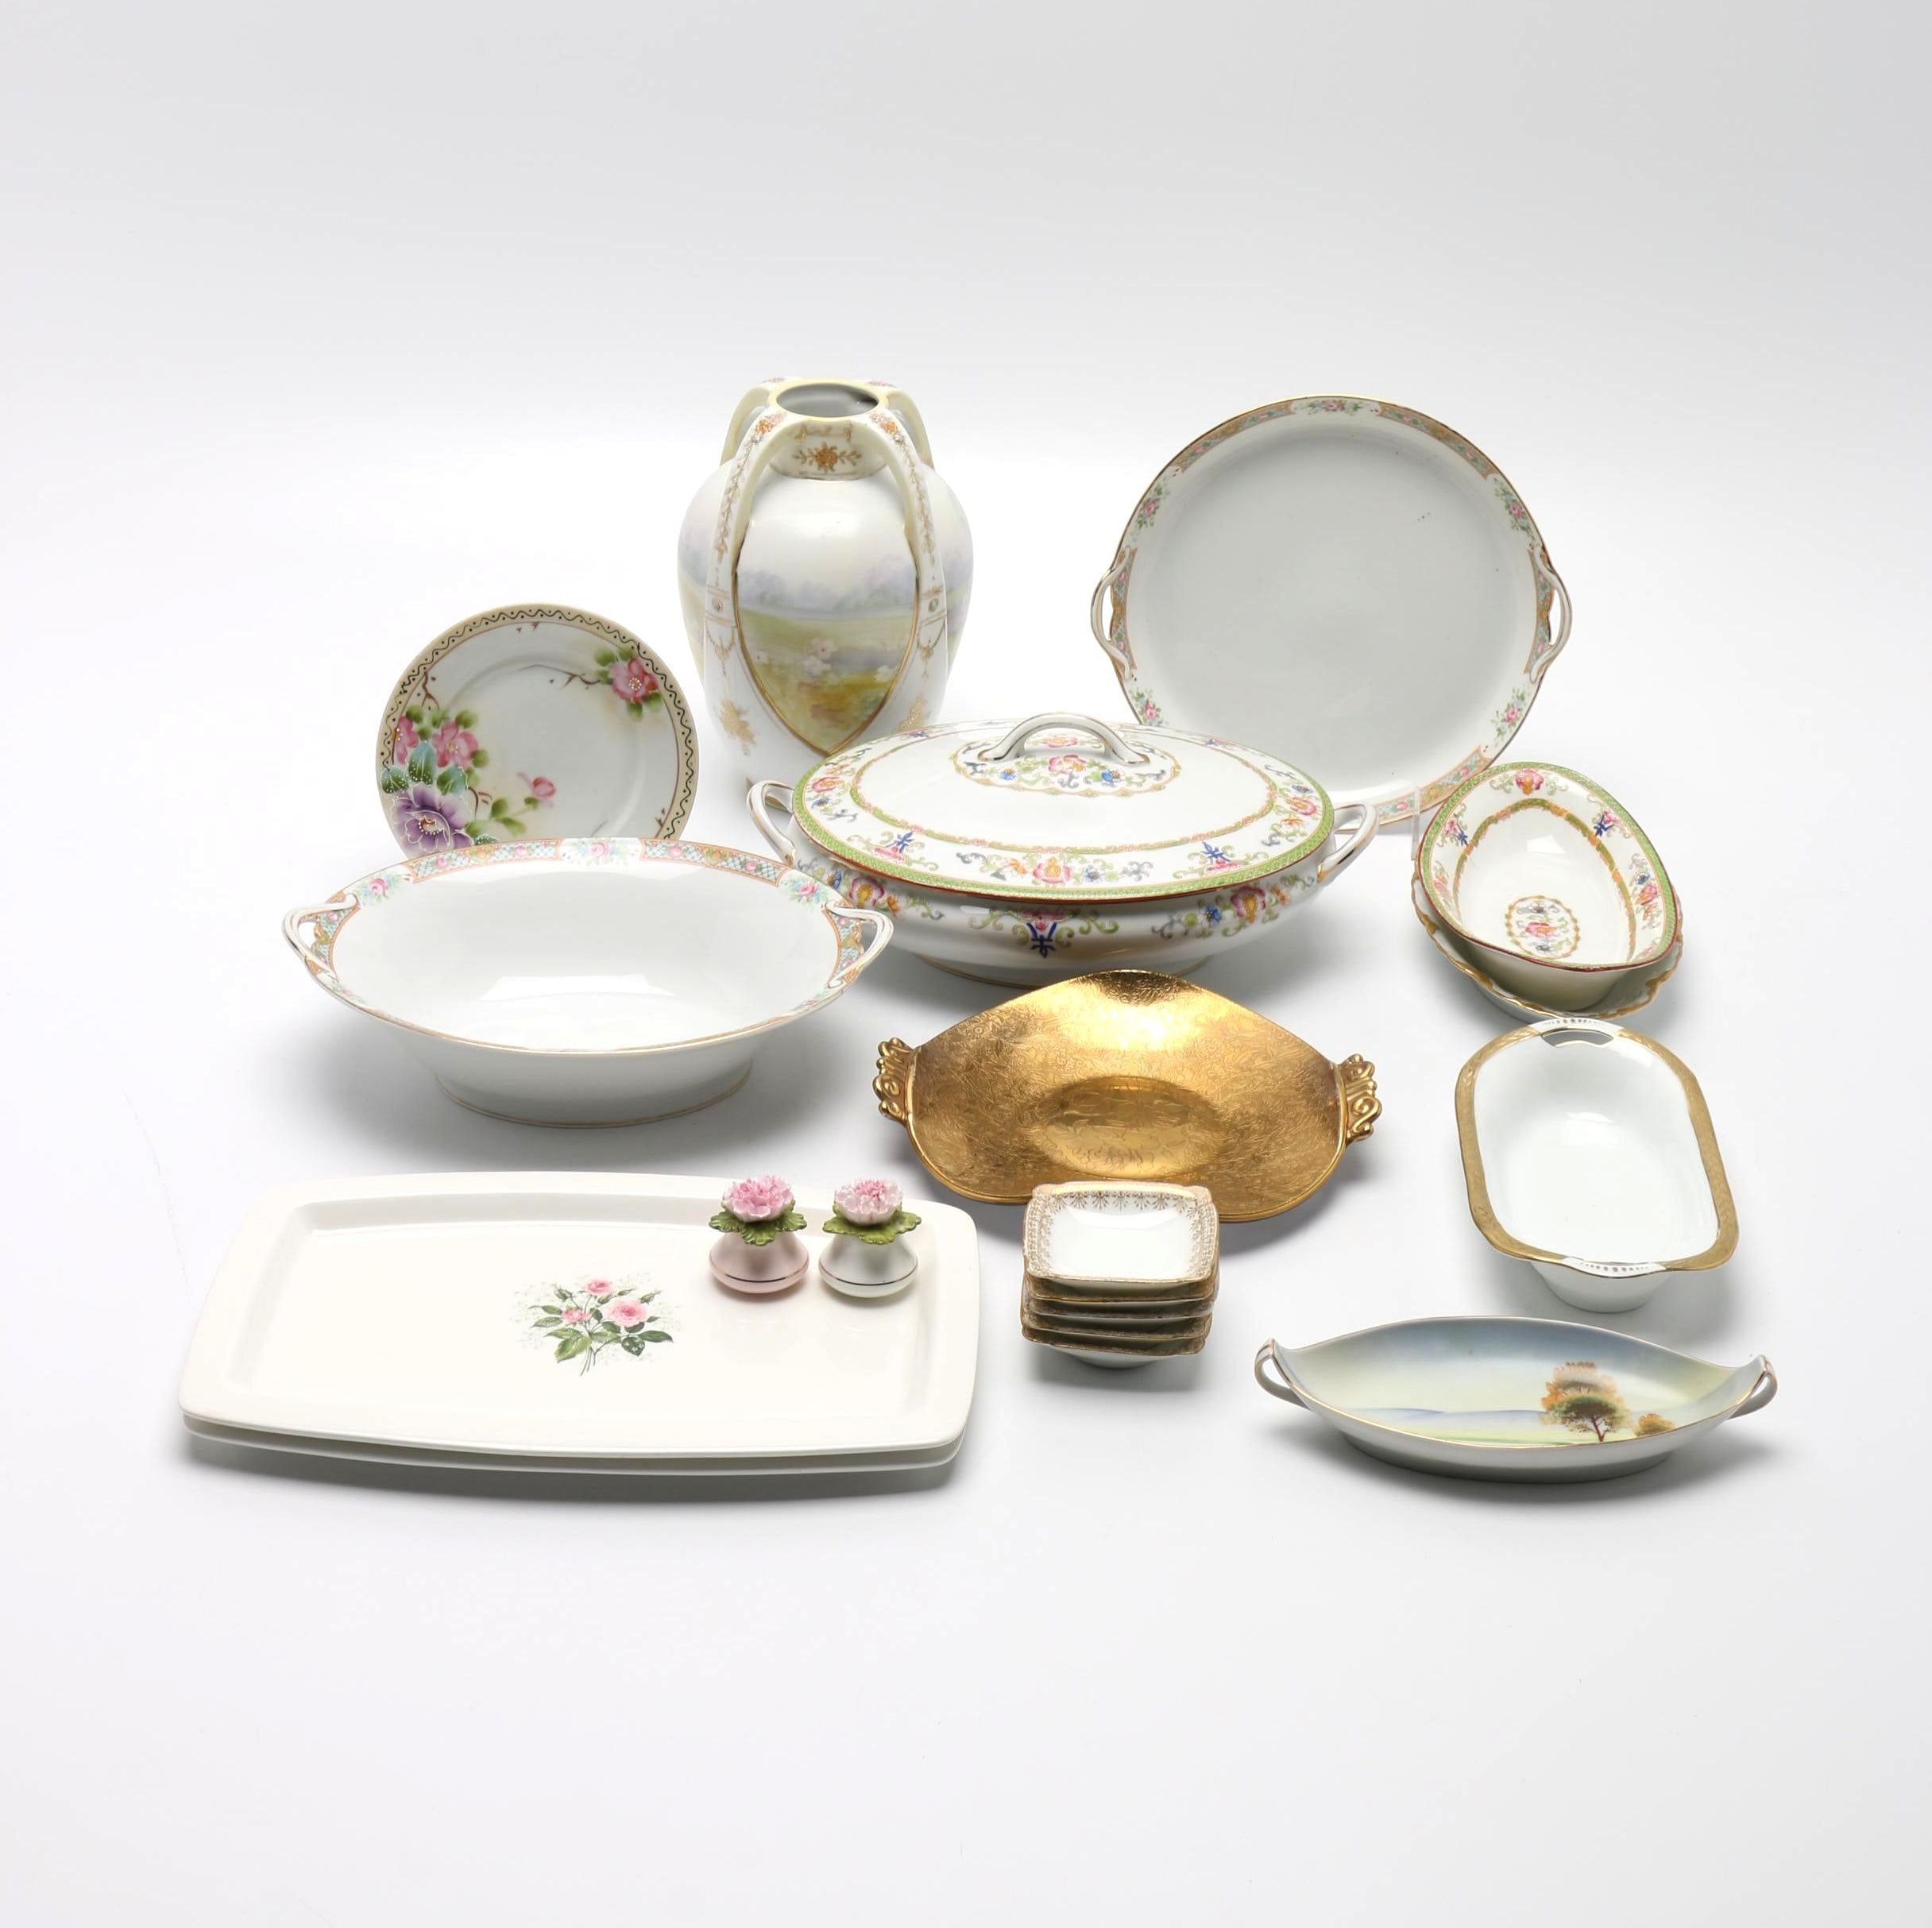 Noritake and Other Porcelain Pieces